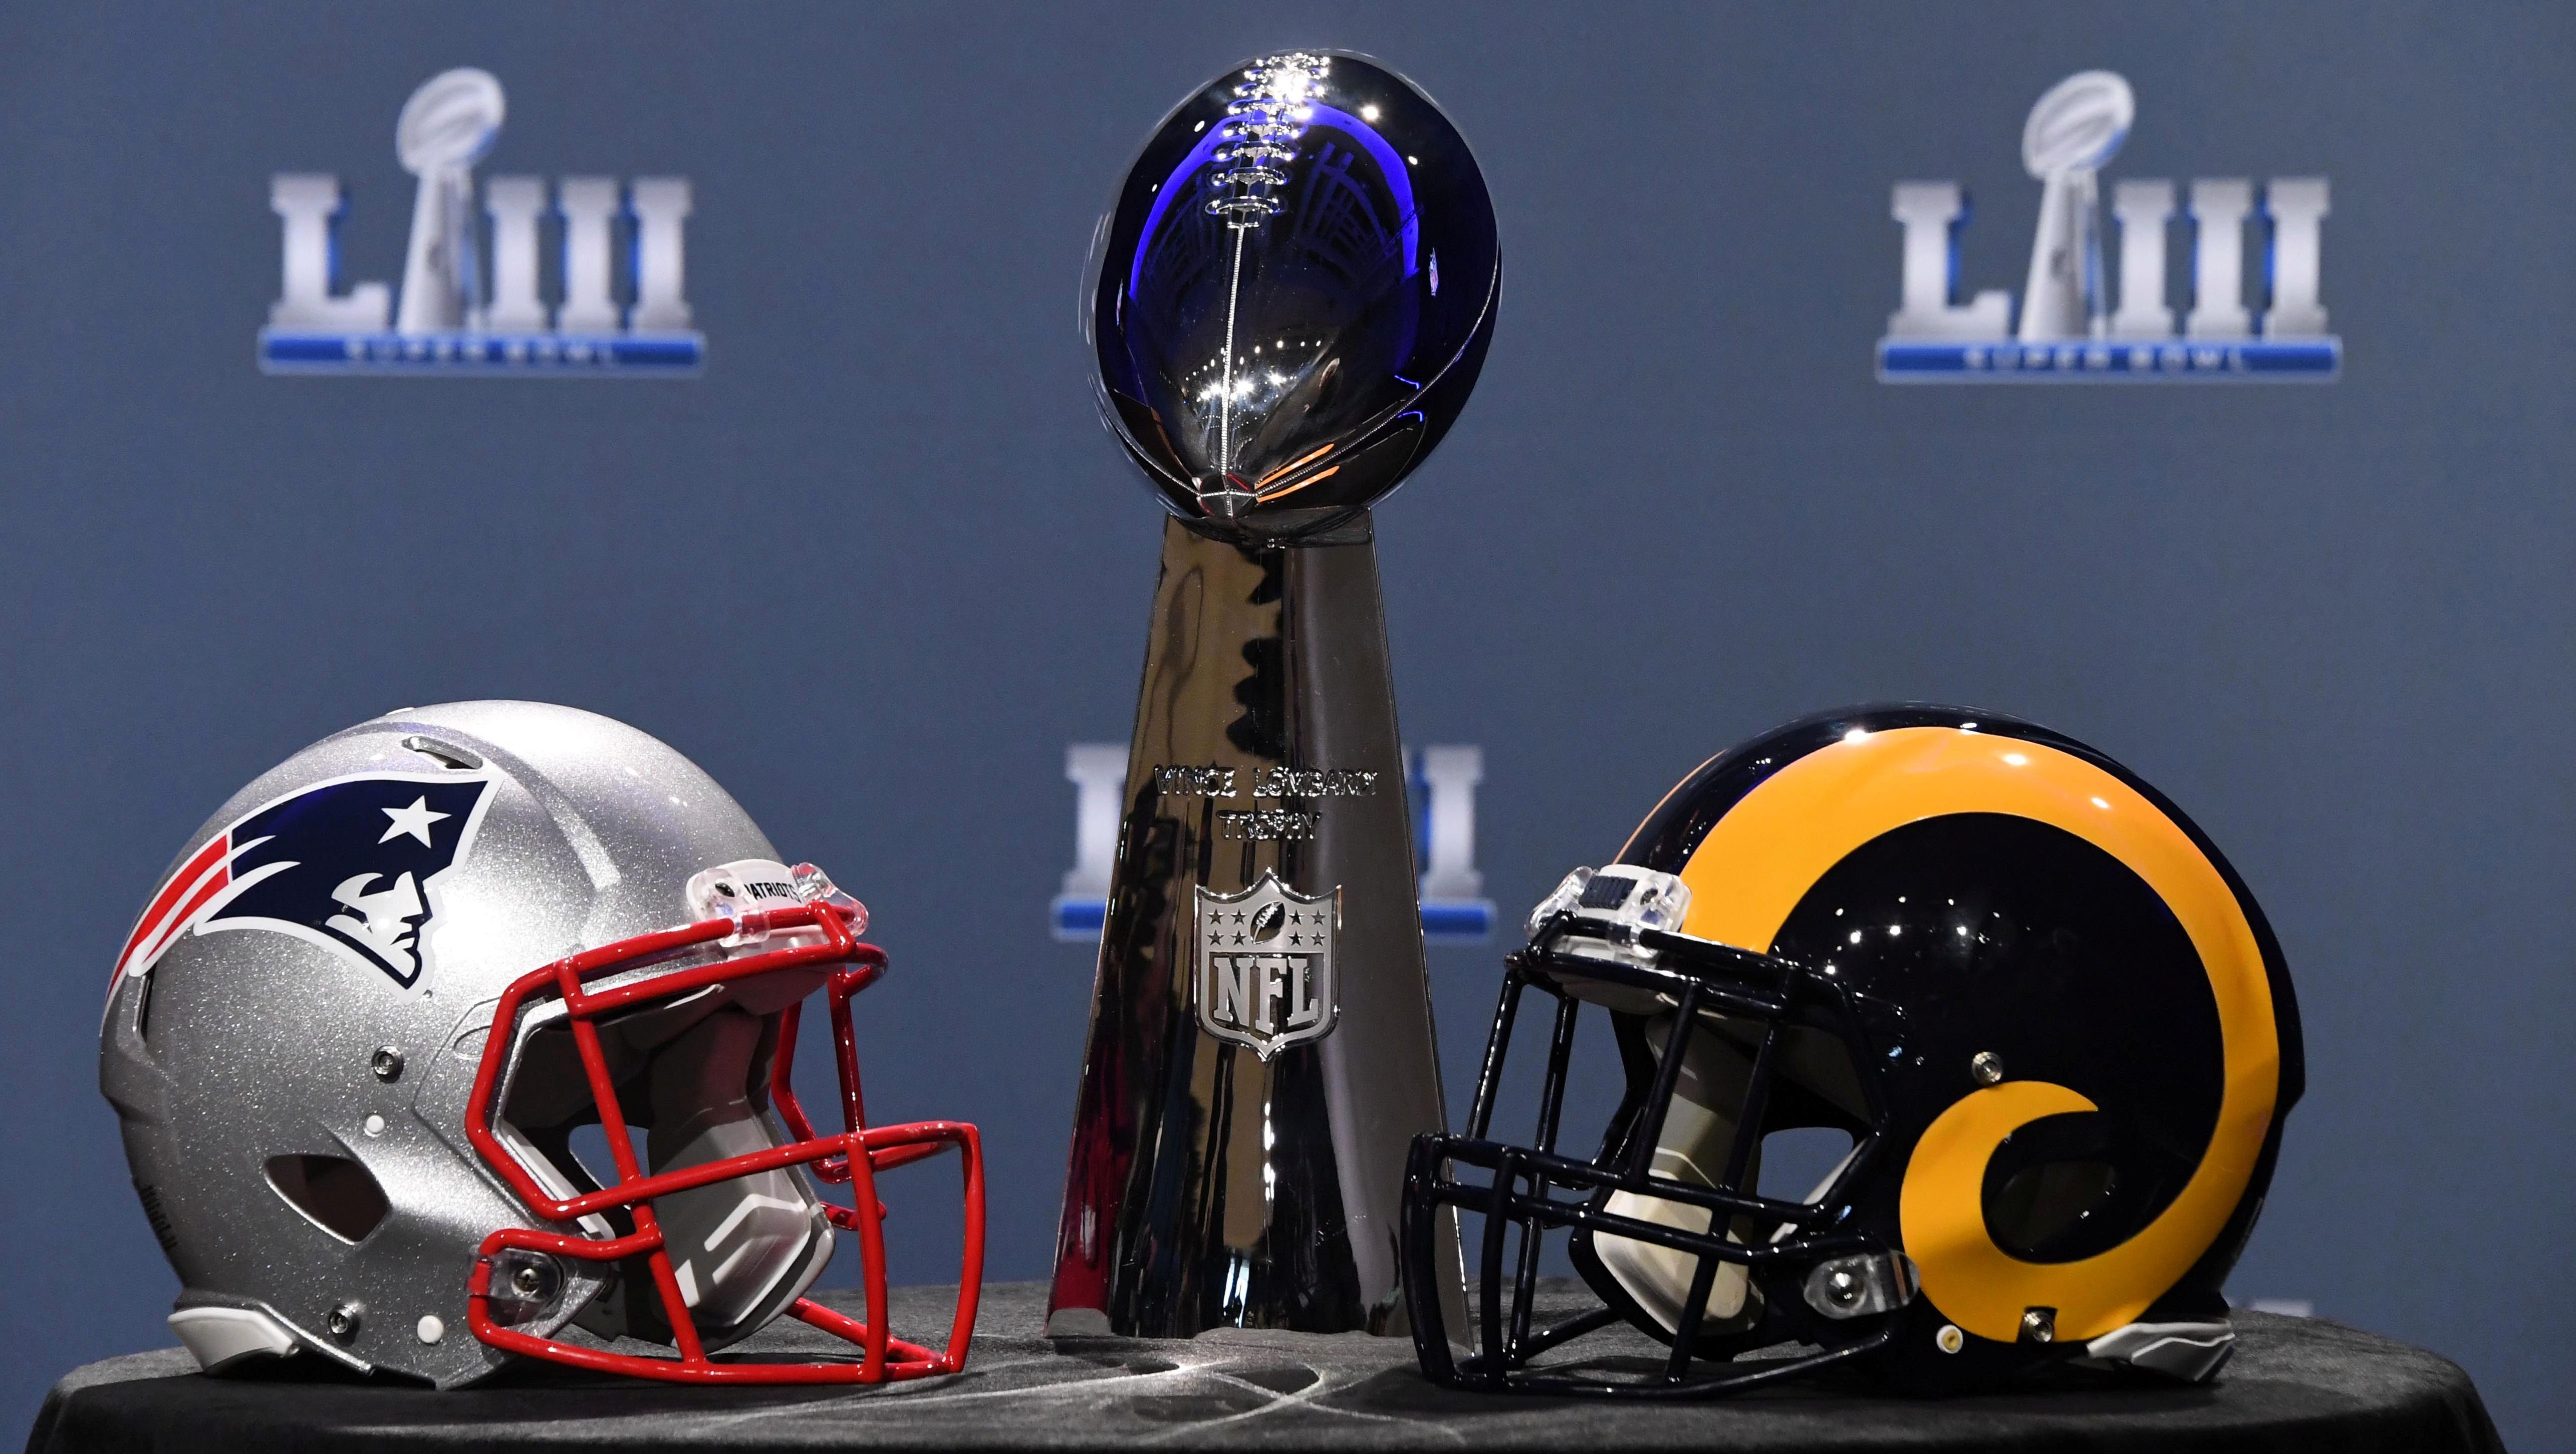 Jan 30, 2019; Atlanta, GA, USA; The Vince Lombardi Trophy and helmets for the New England Patriots and Los Angeles Rams are displayed before the Roger Goodell press conference in advance of Super Bowl LIII at Georgia World Congress Center.